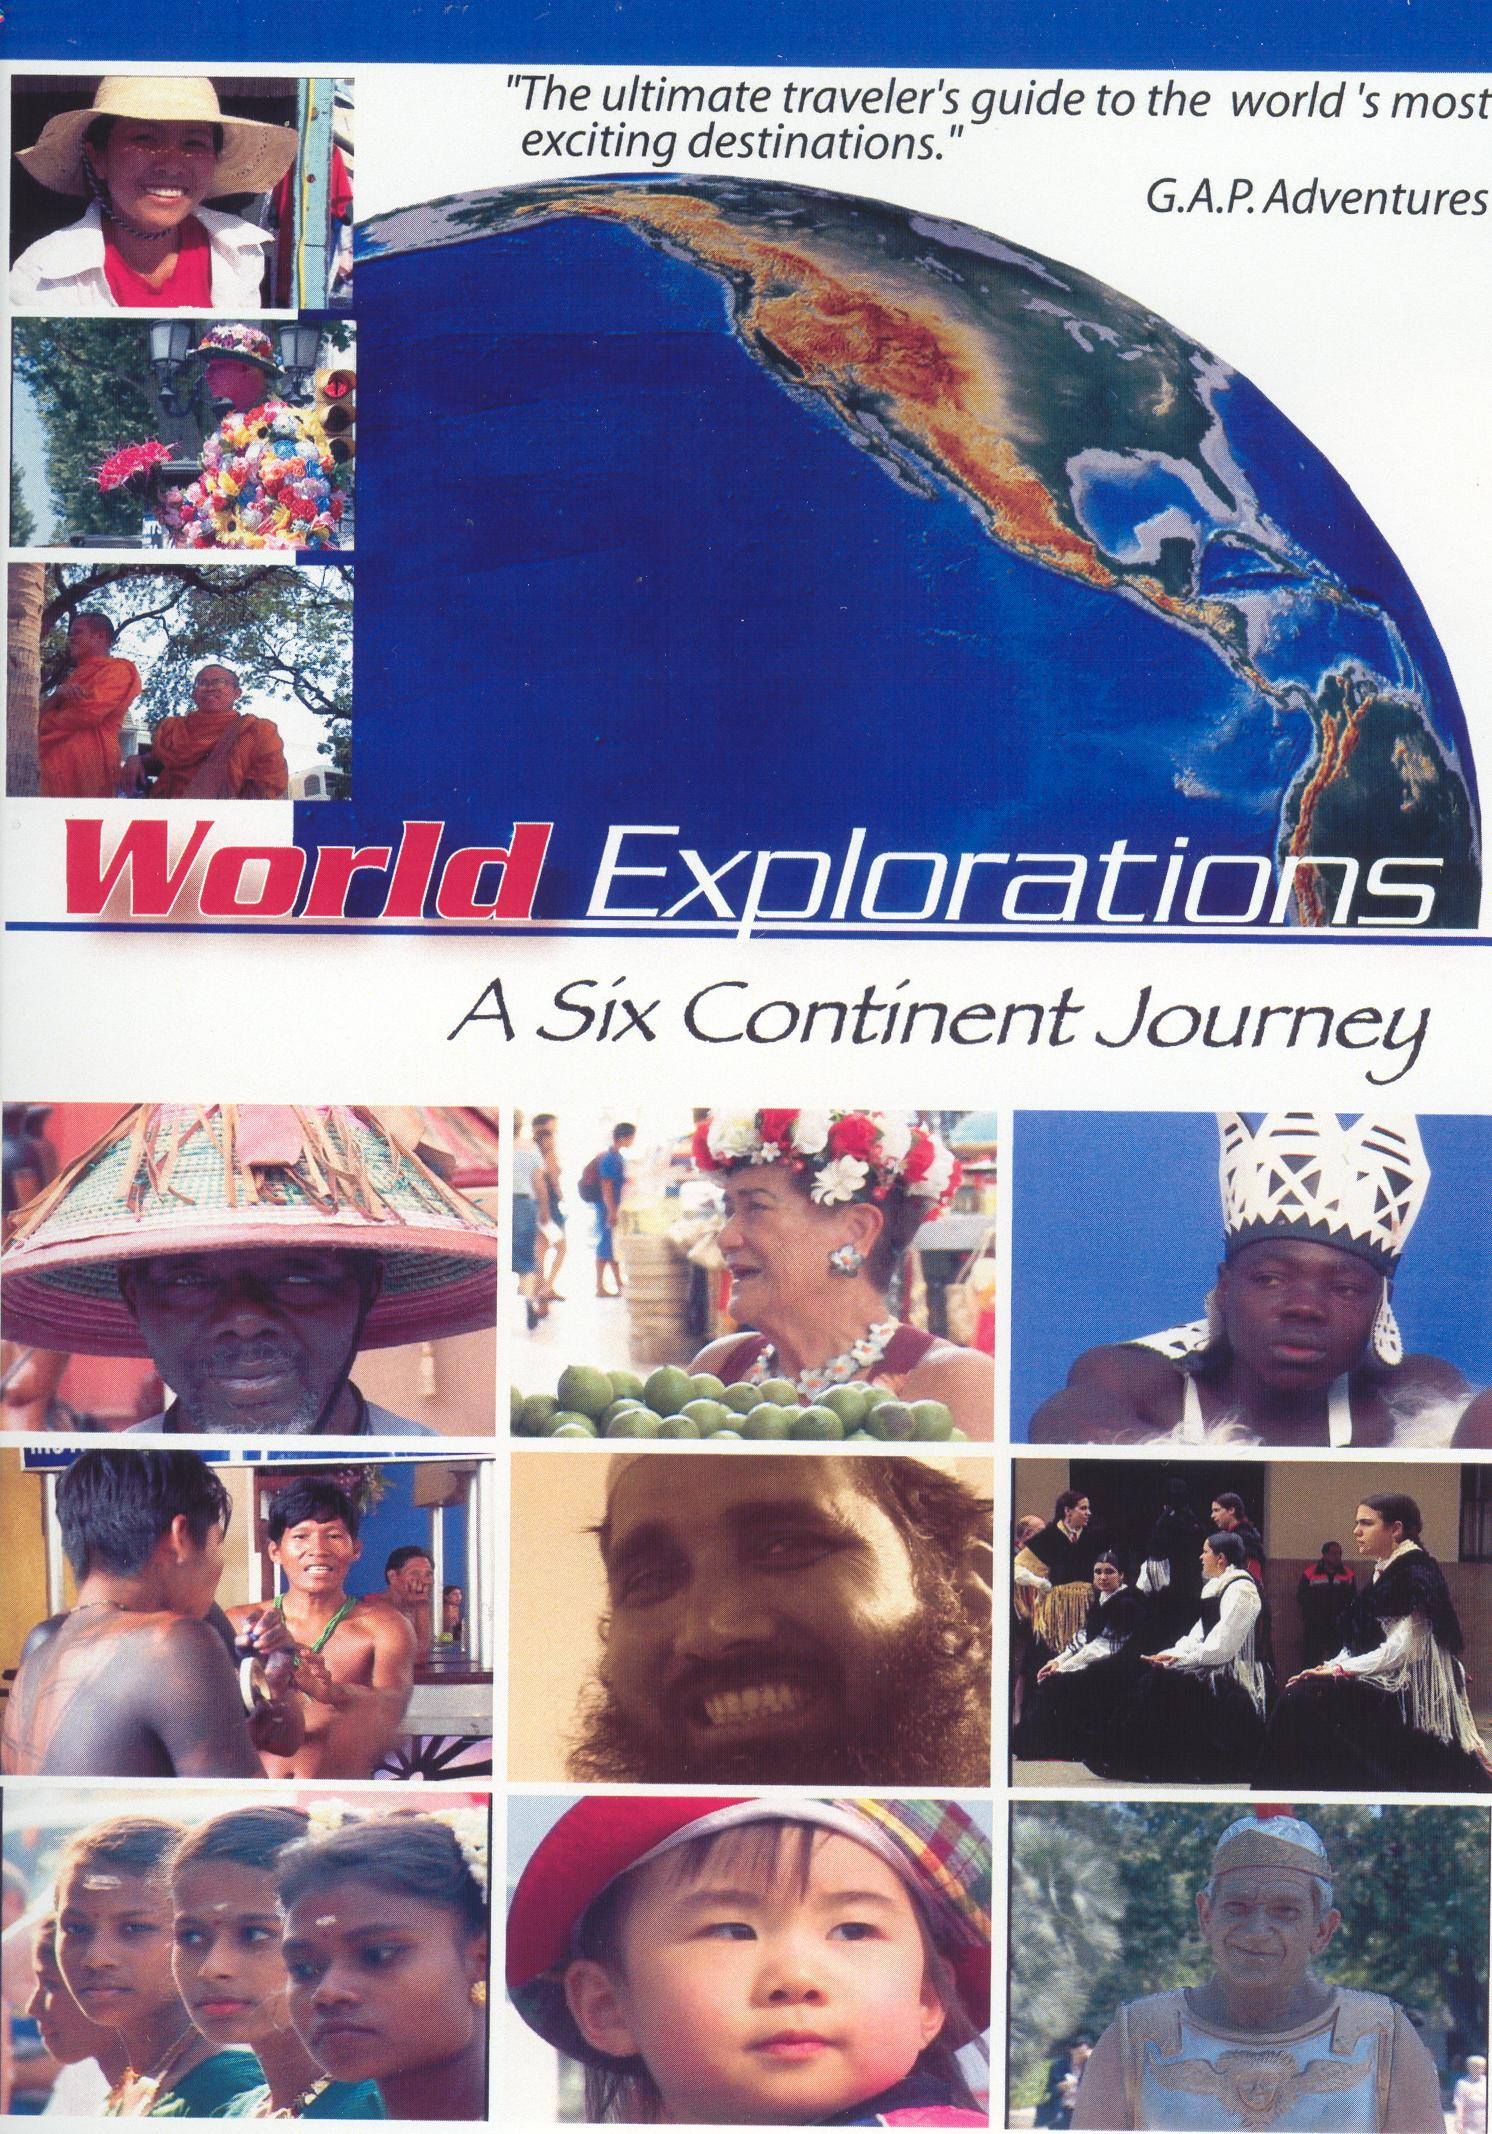 World Explorations: A Six Continent Journey